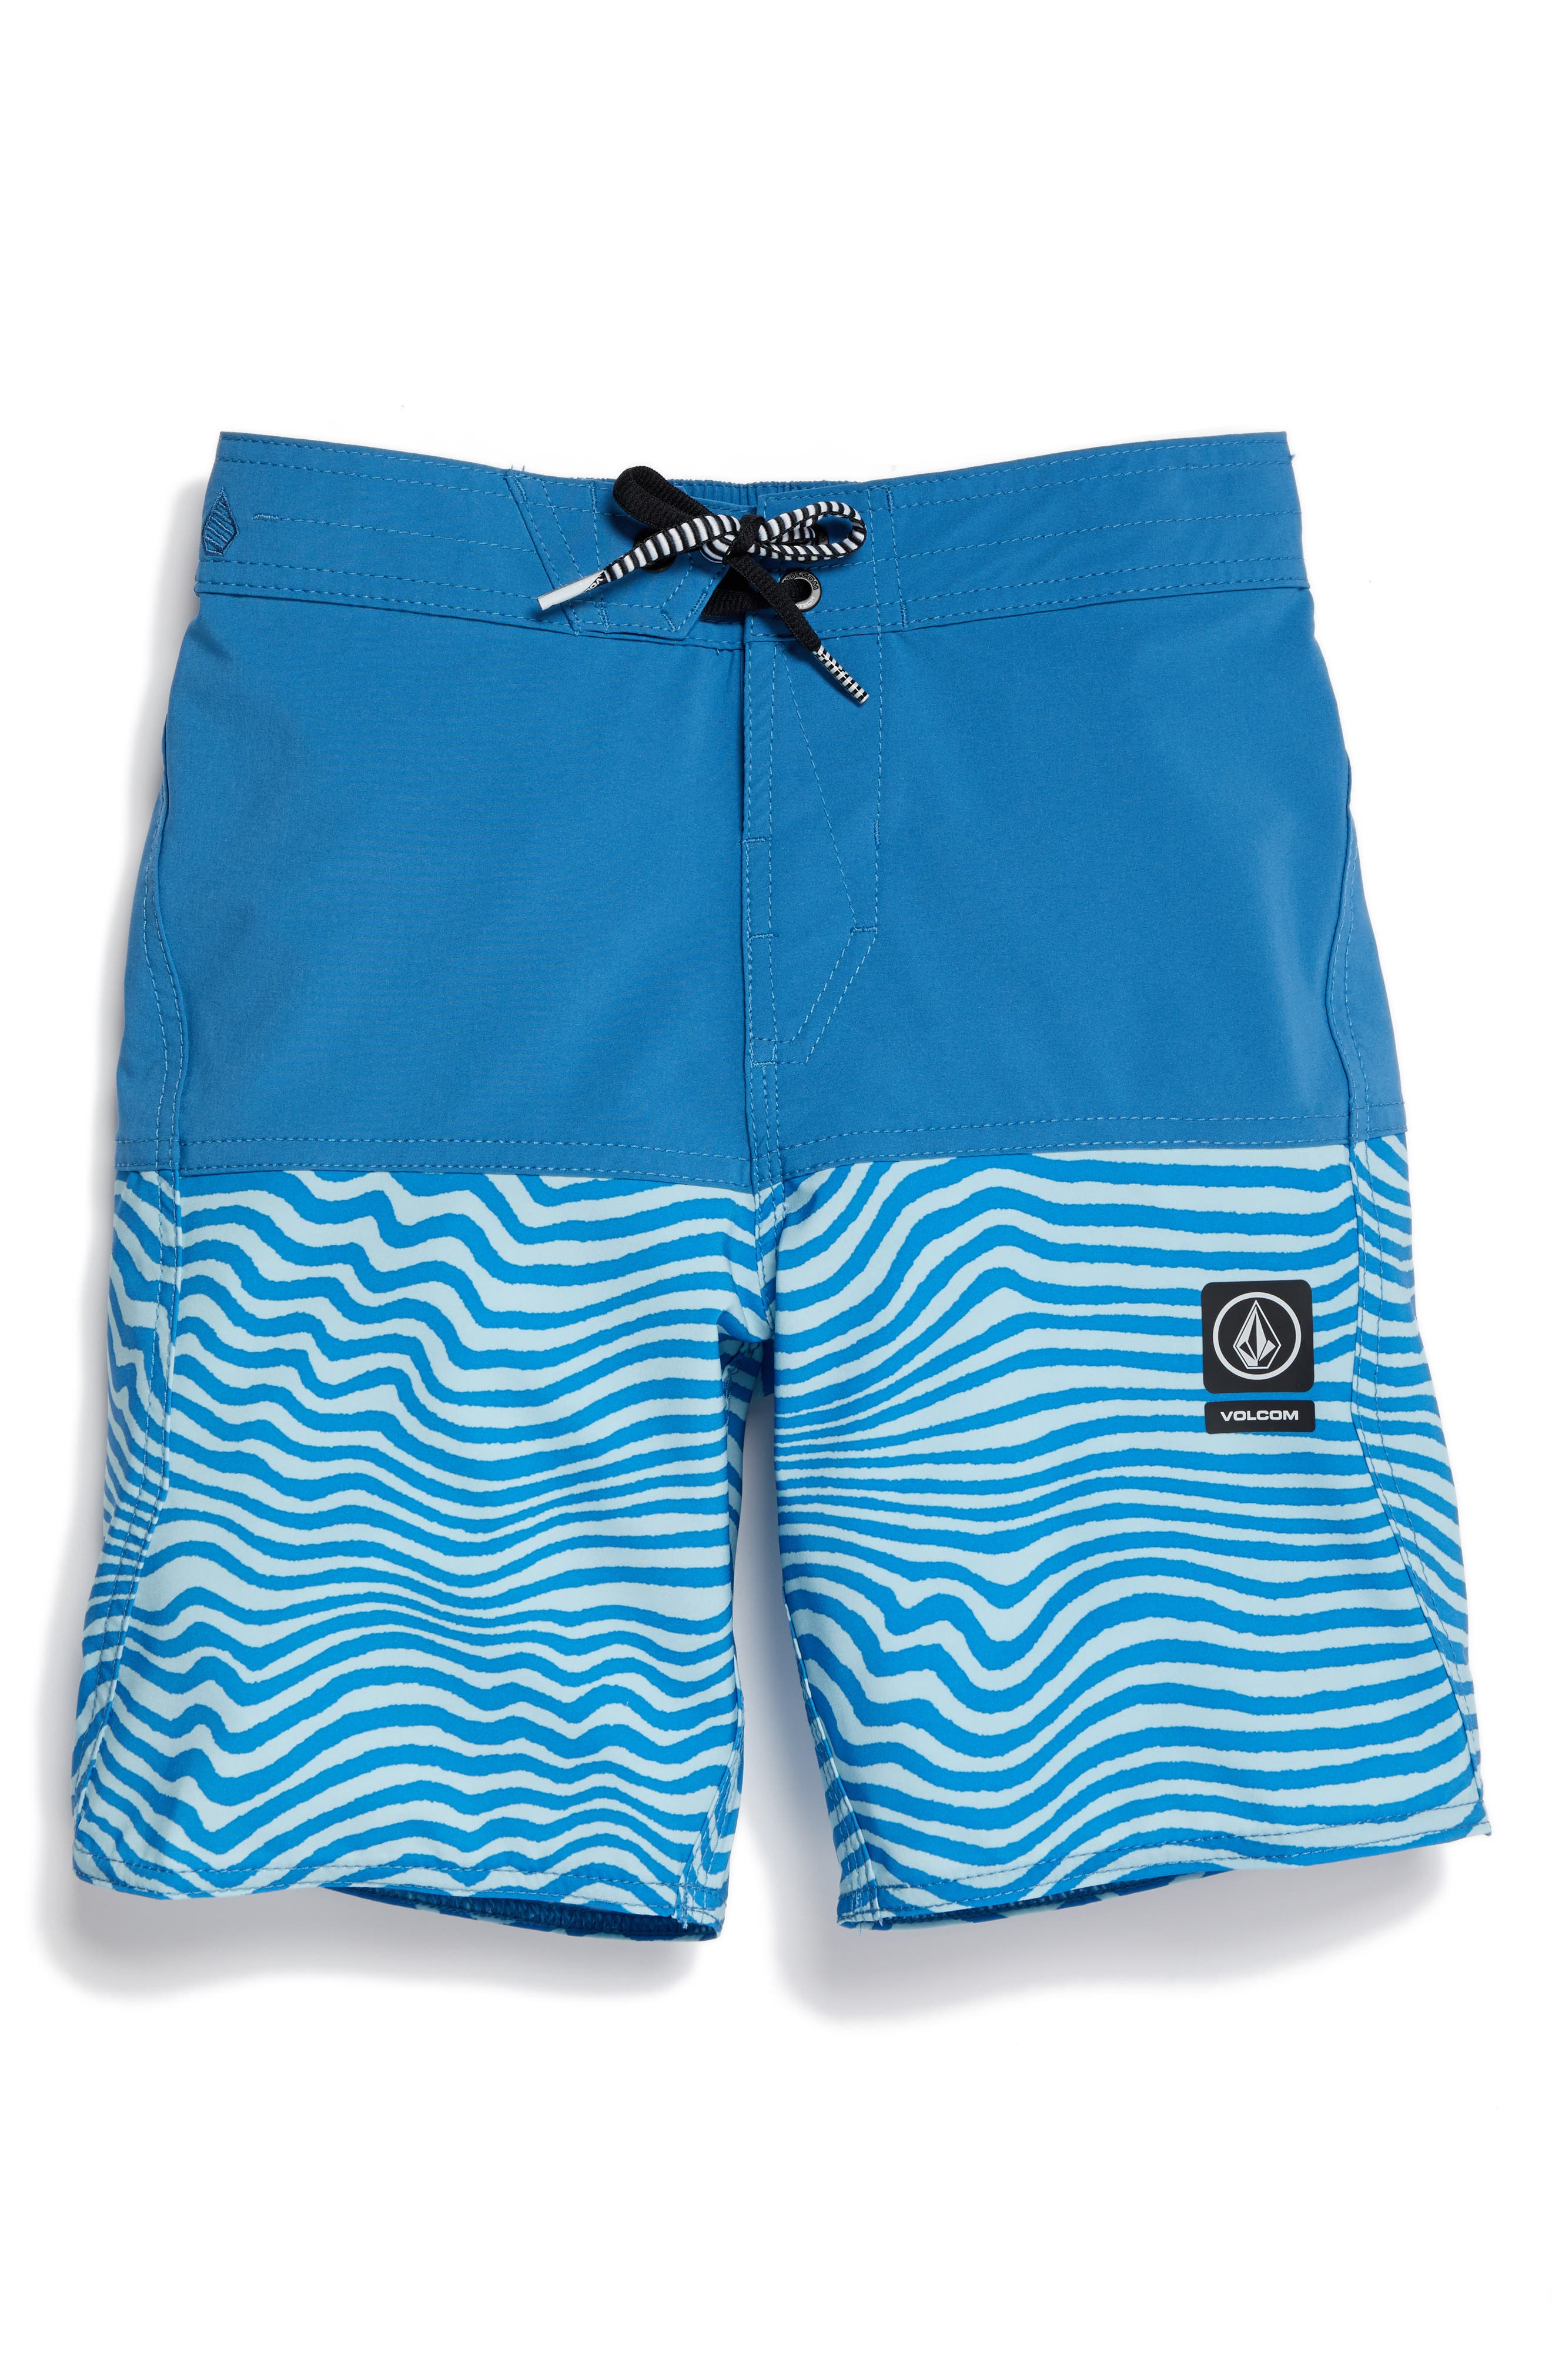 Volcom Vibes Jammer Board Shorts (Big Boys)